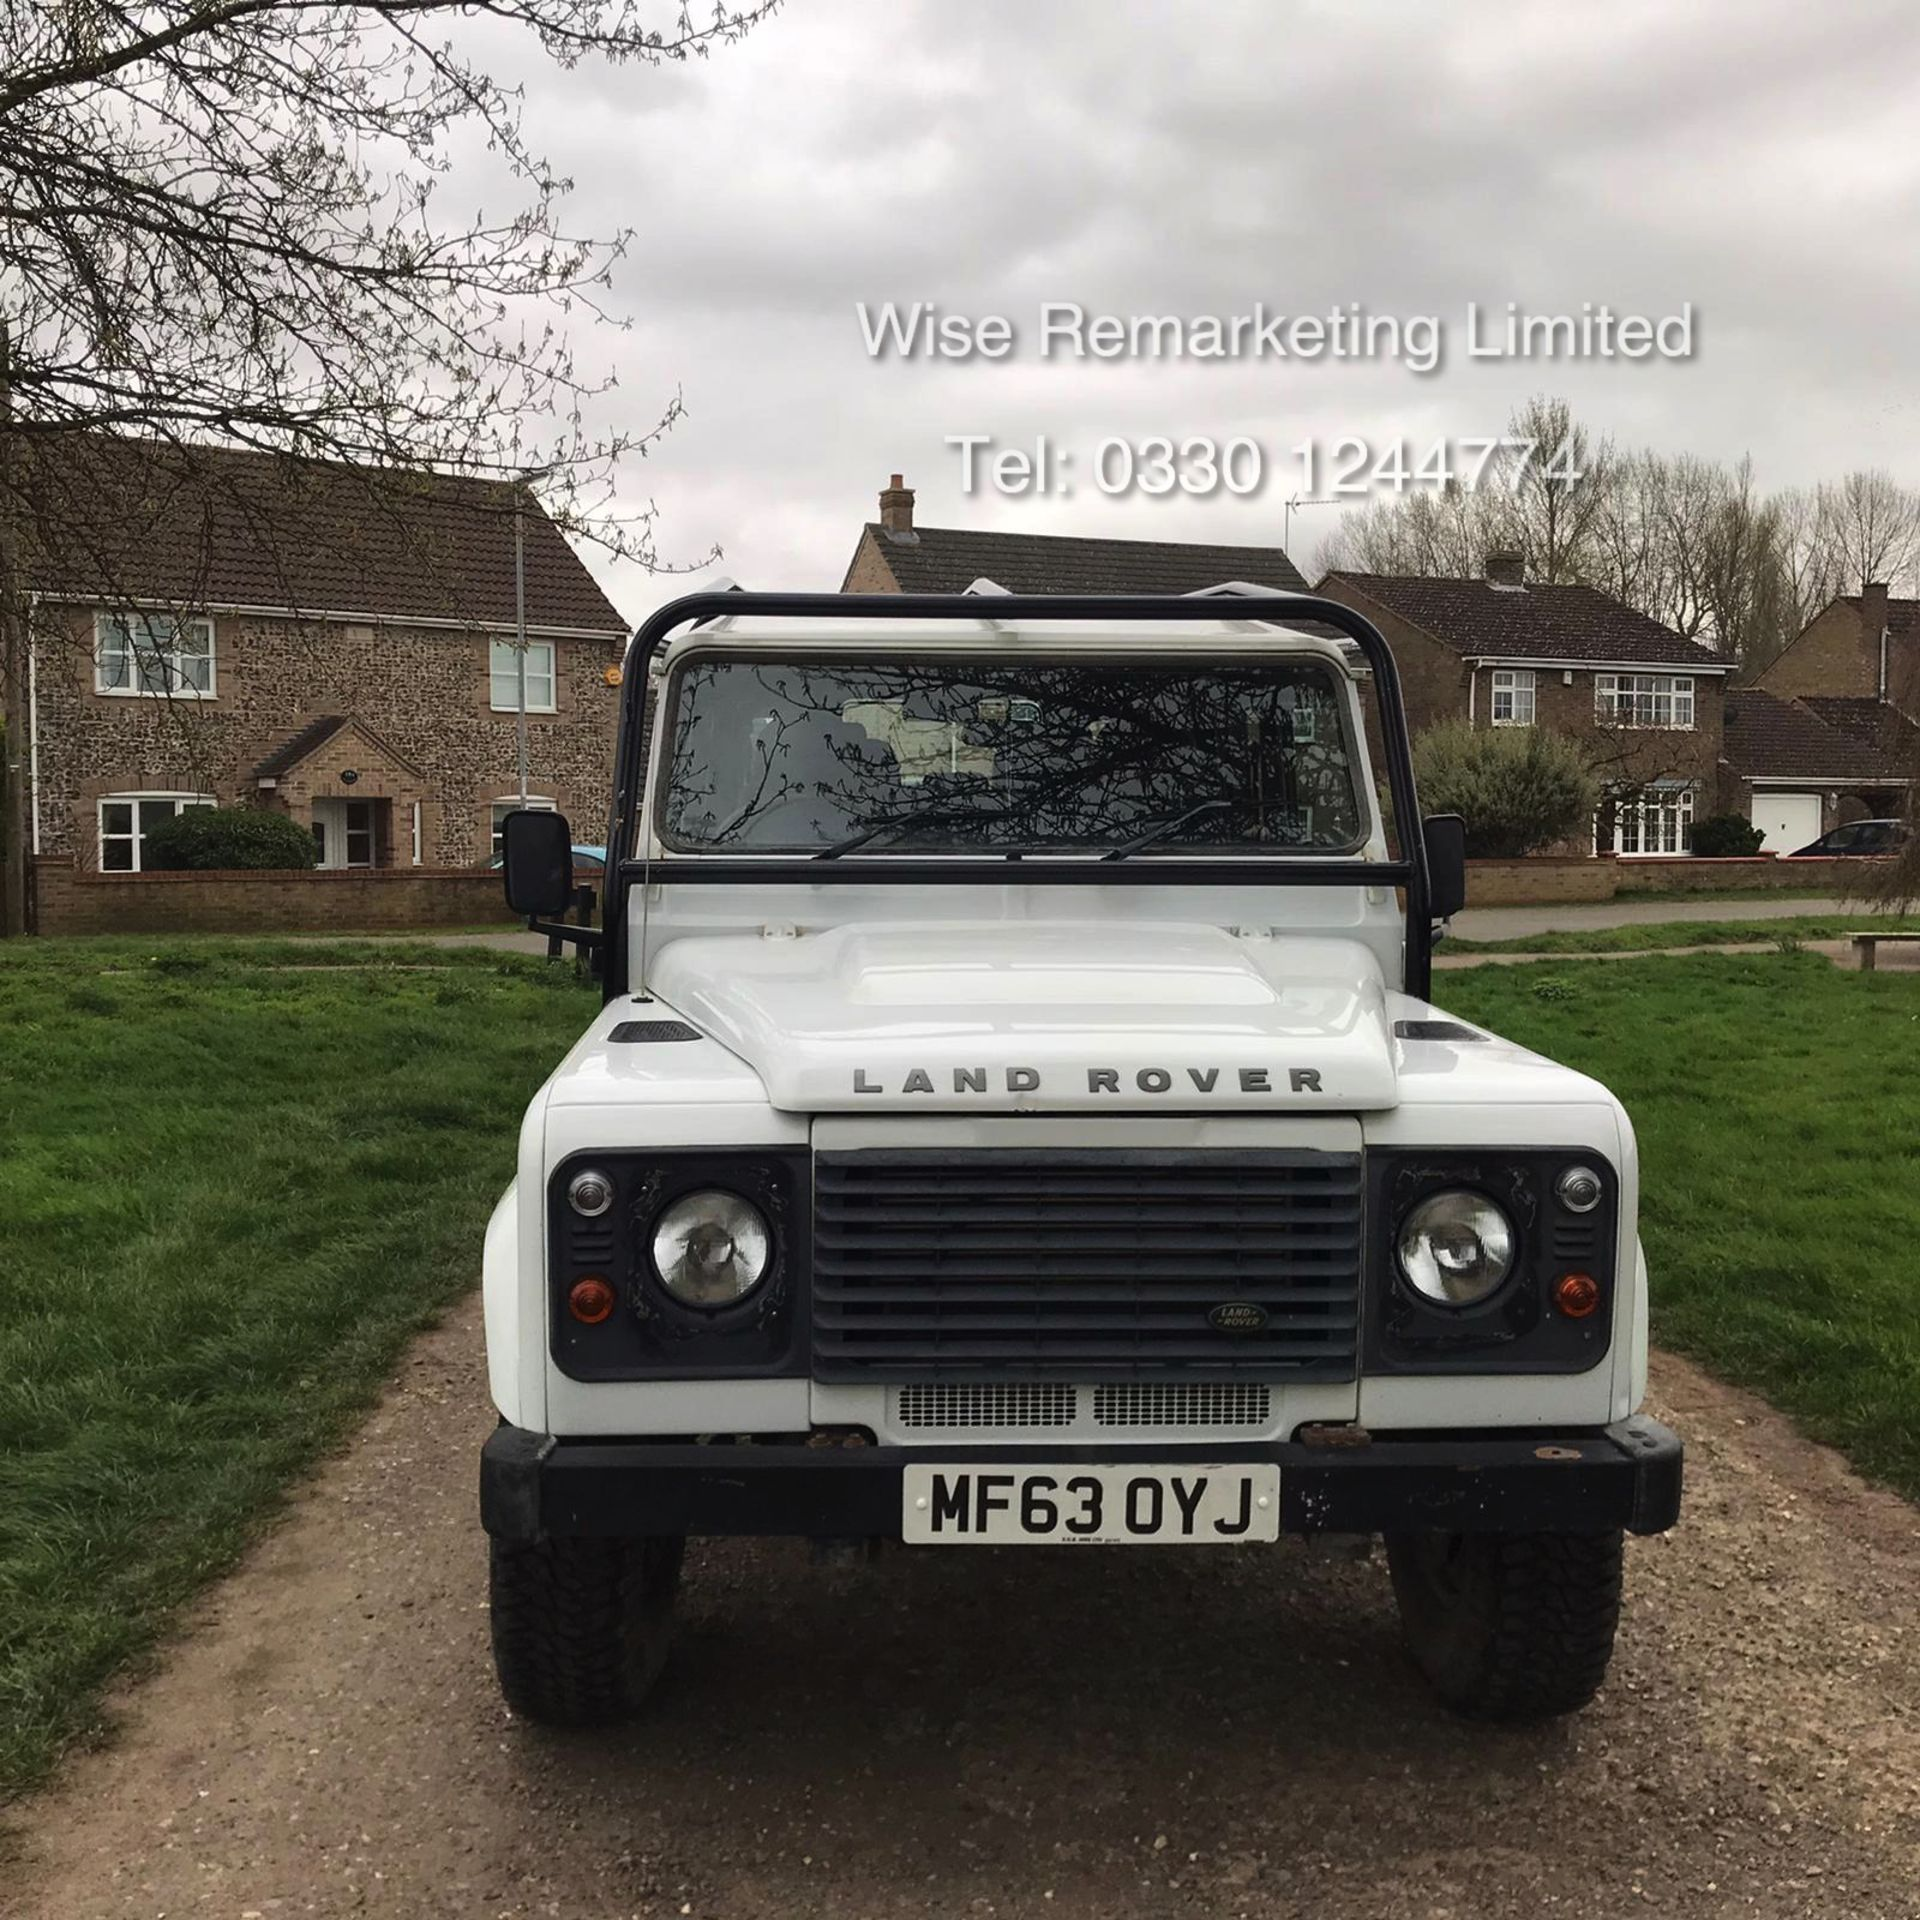 Lot 3a - Land Rover Defender 110 2.2 TD County Station Wagon - 2014 Model - 1 Owner From New - ONLY 19K Miles